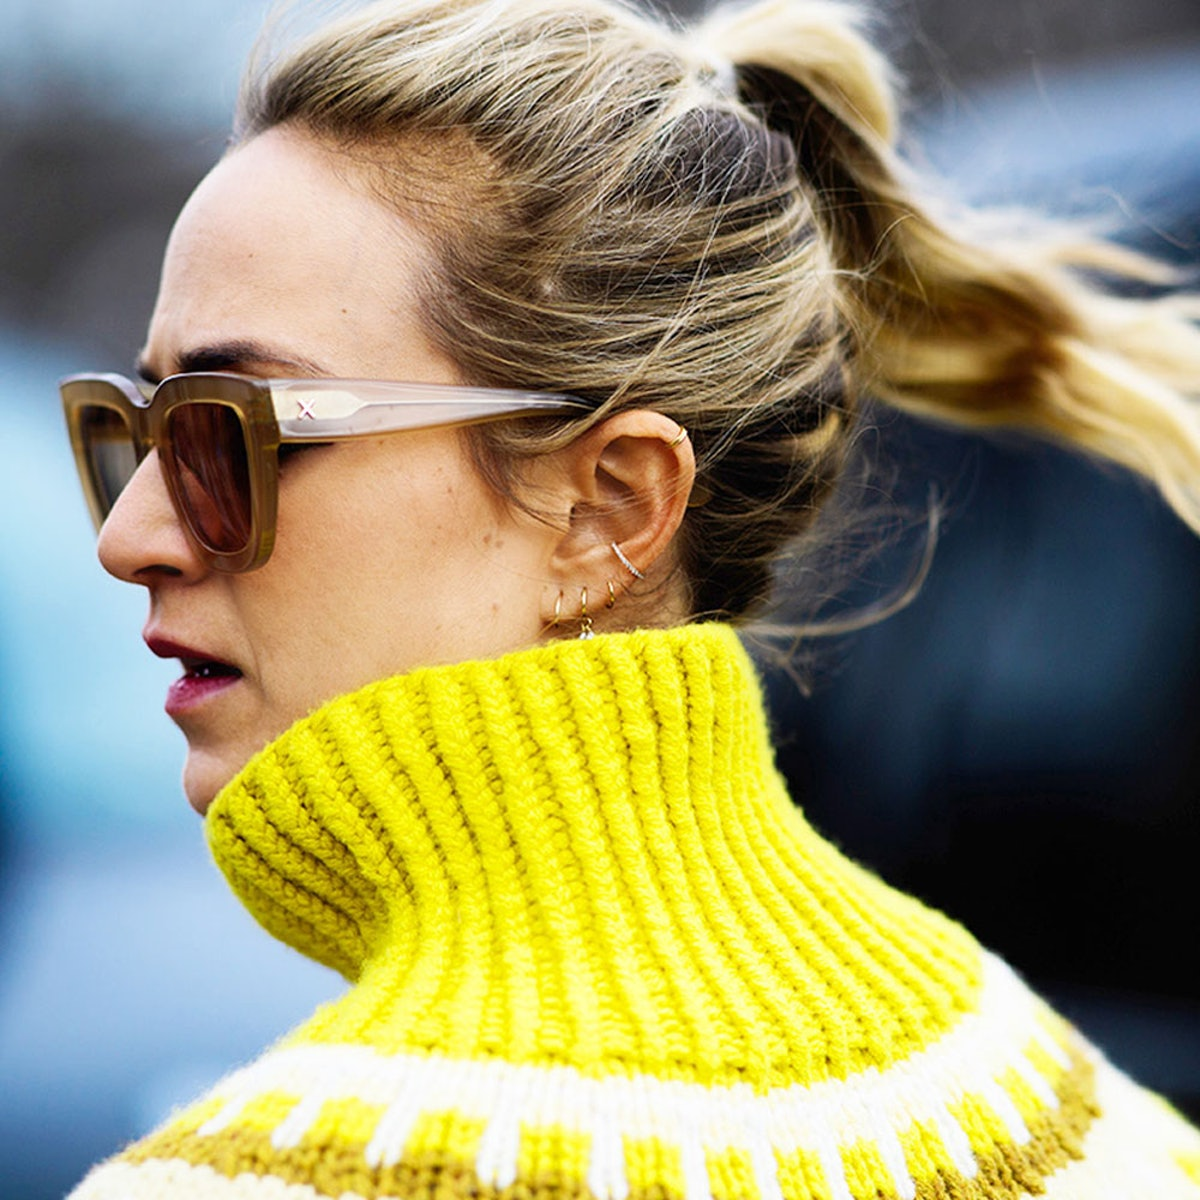 This Is The New Ear Jacket Trend